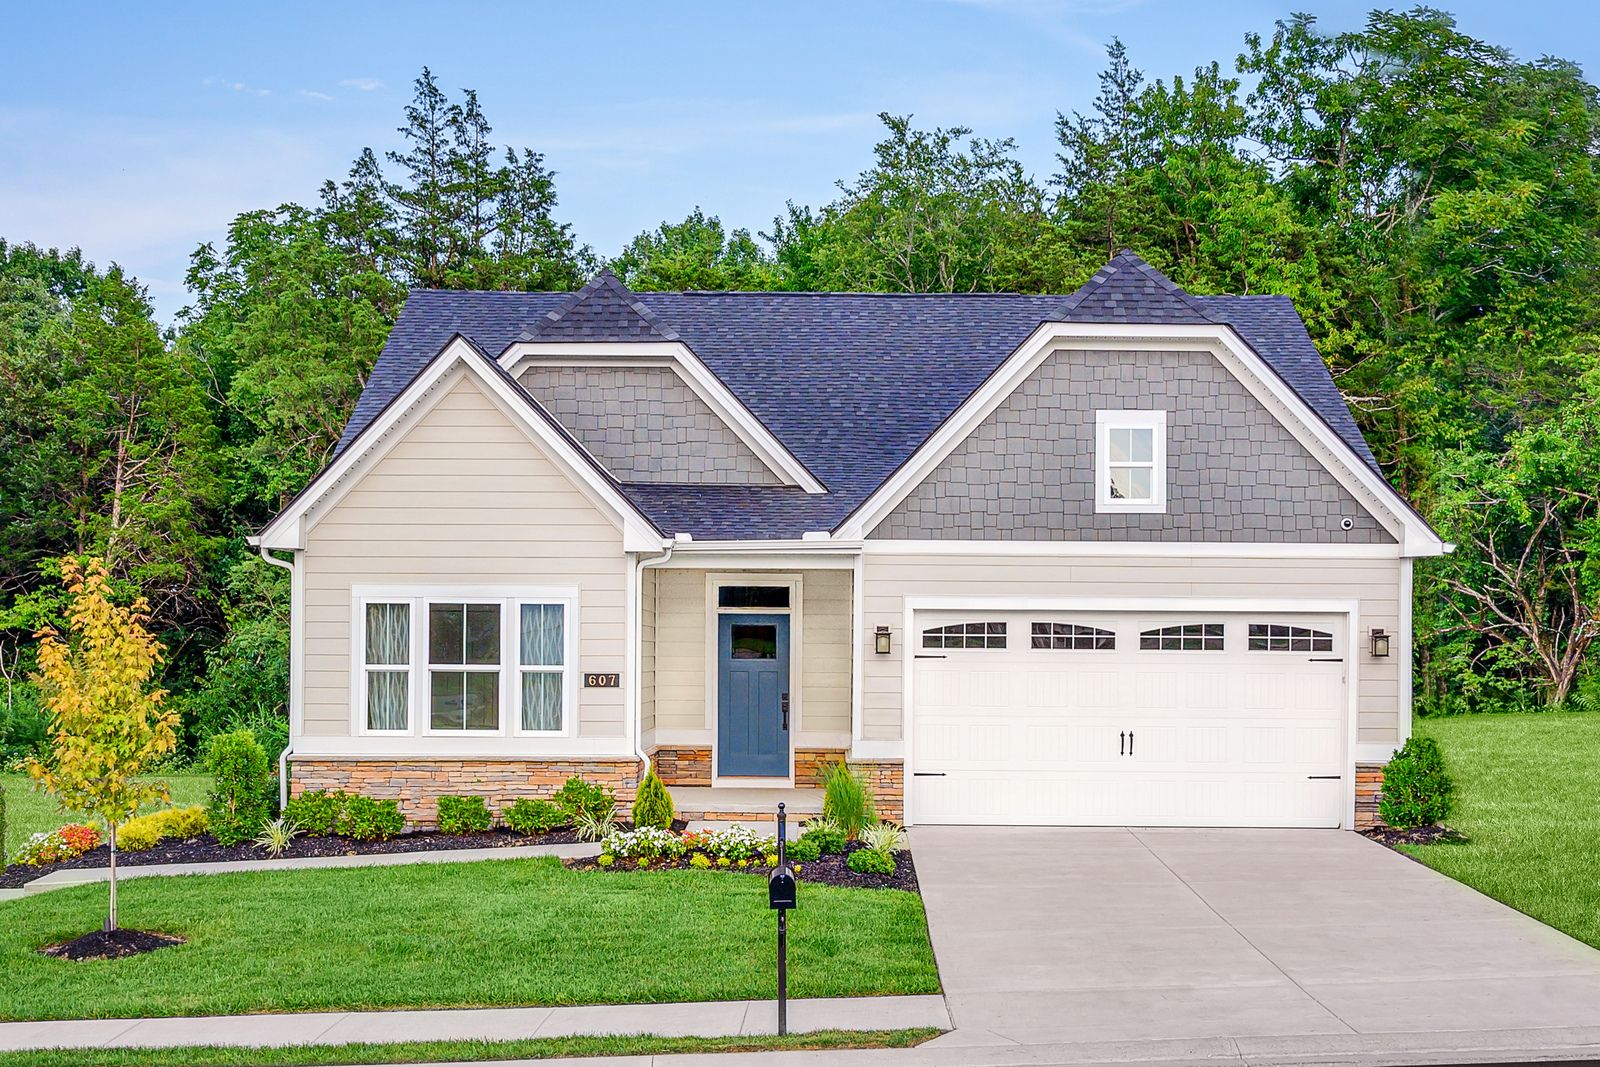 Welcome home to Highland Woods - New Ranch Homes in Elgin:Lawn care & snow removal included and fences allowed! Located in an amenity filledcommunity. From the upper $200s, with basements included.Click here to schedule your visit!